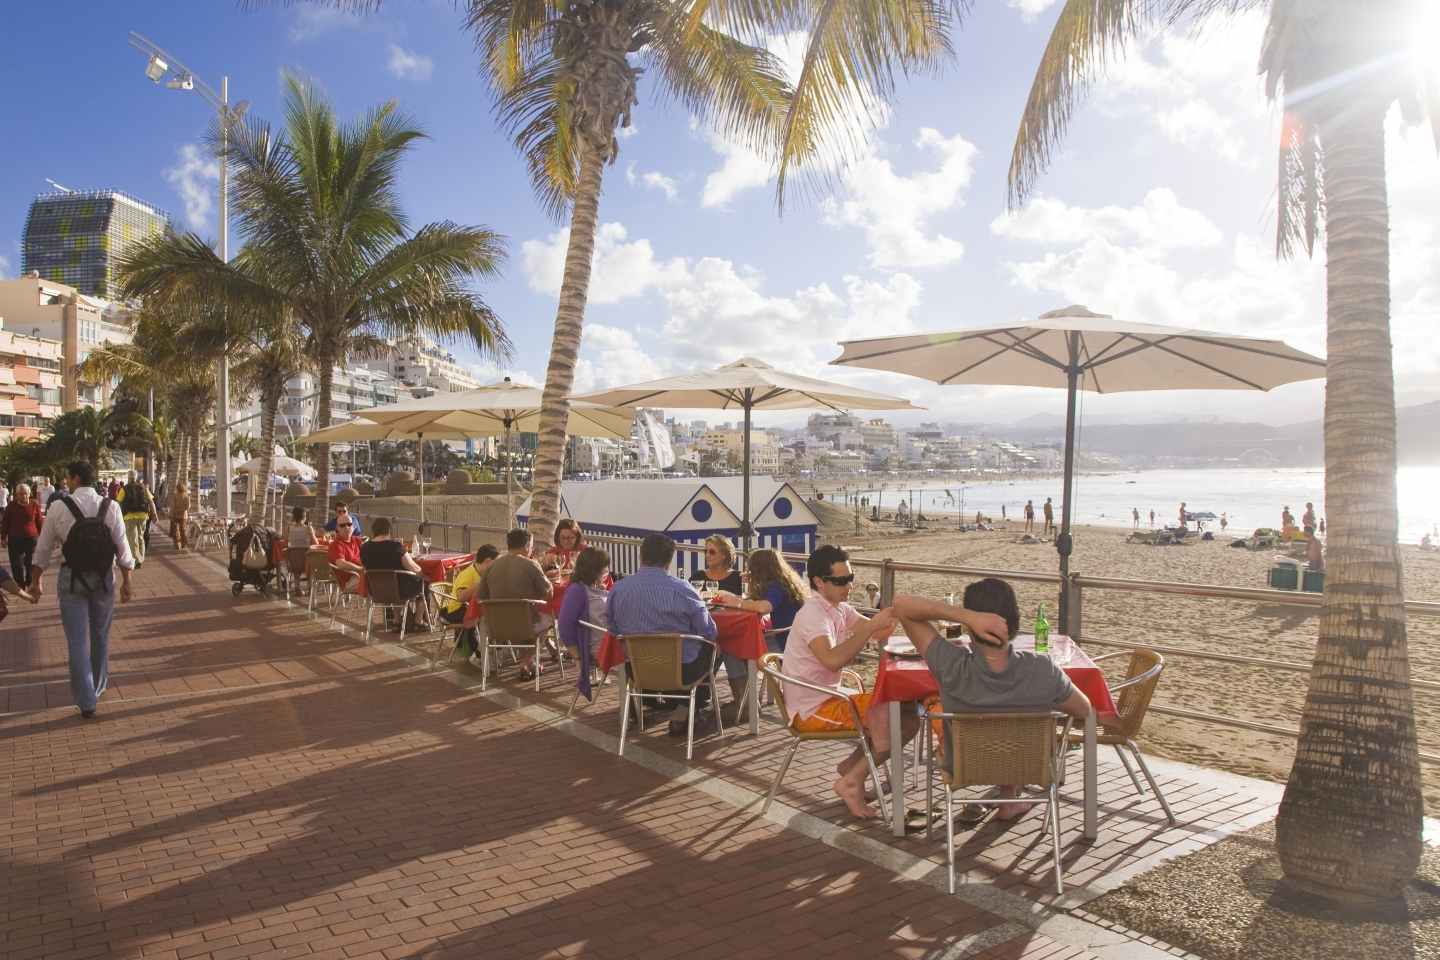 Las Canteras beach promeande with restaurants